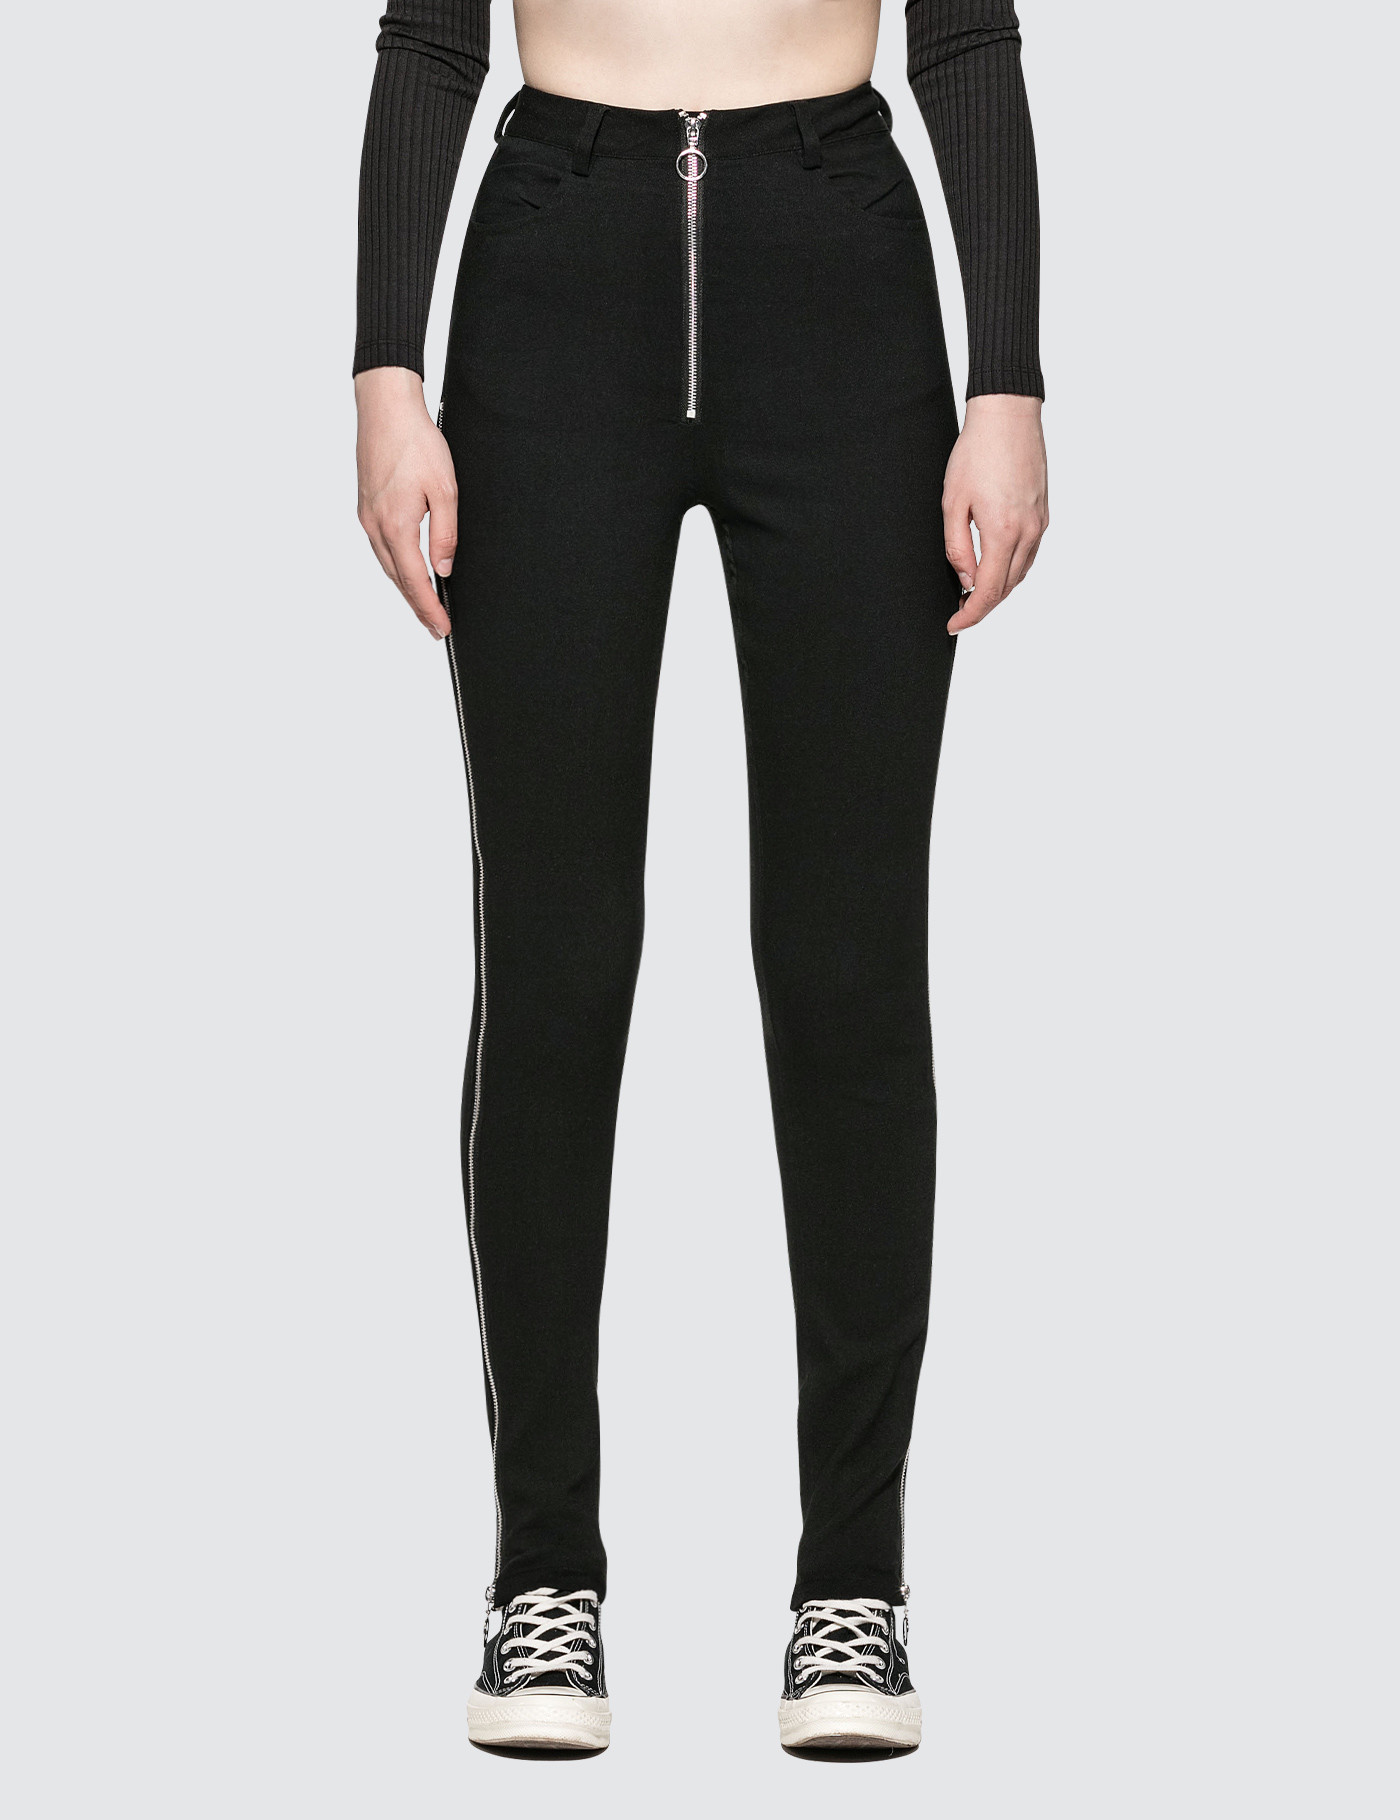 Danielle Guizio Maud Trousers Zipped